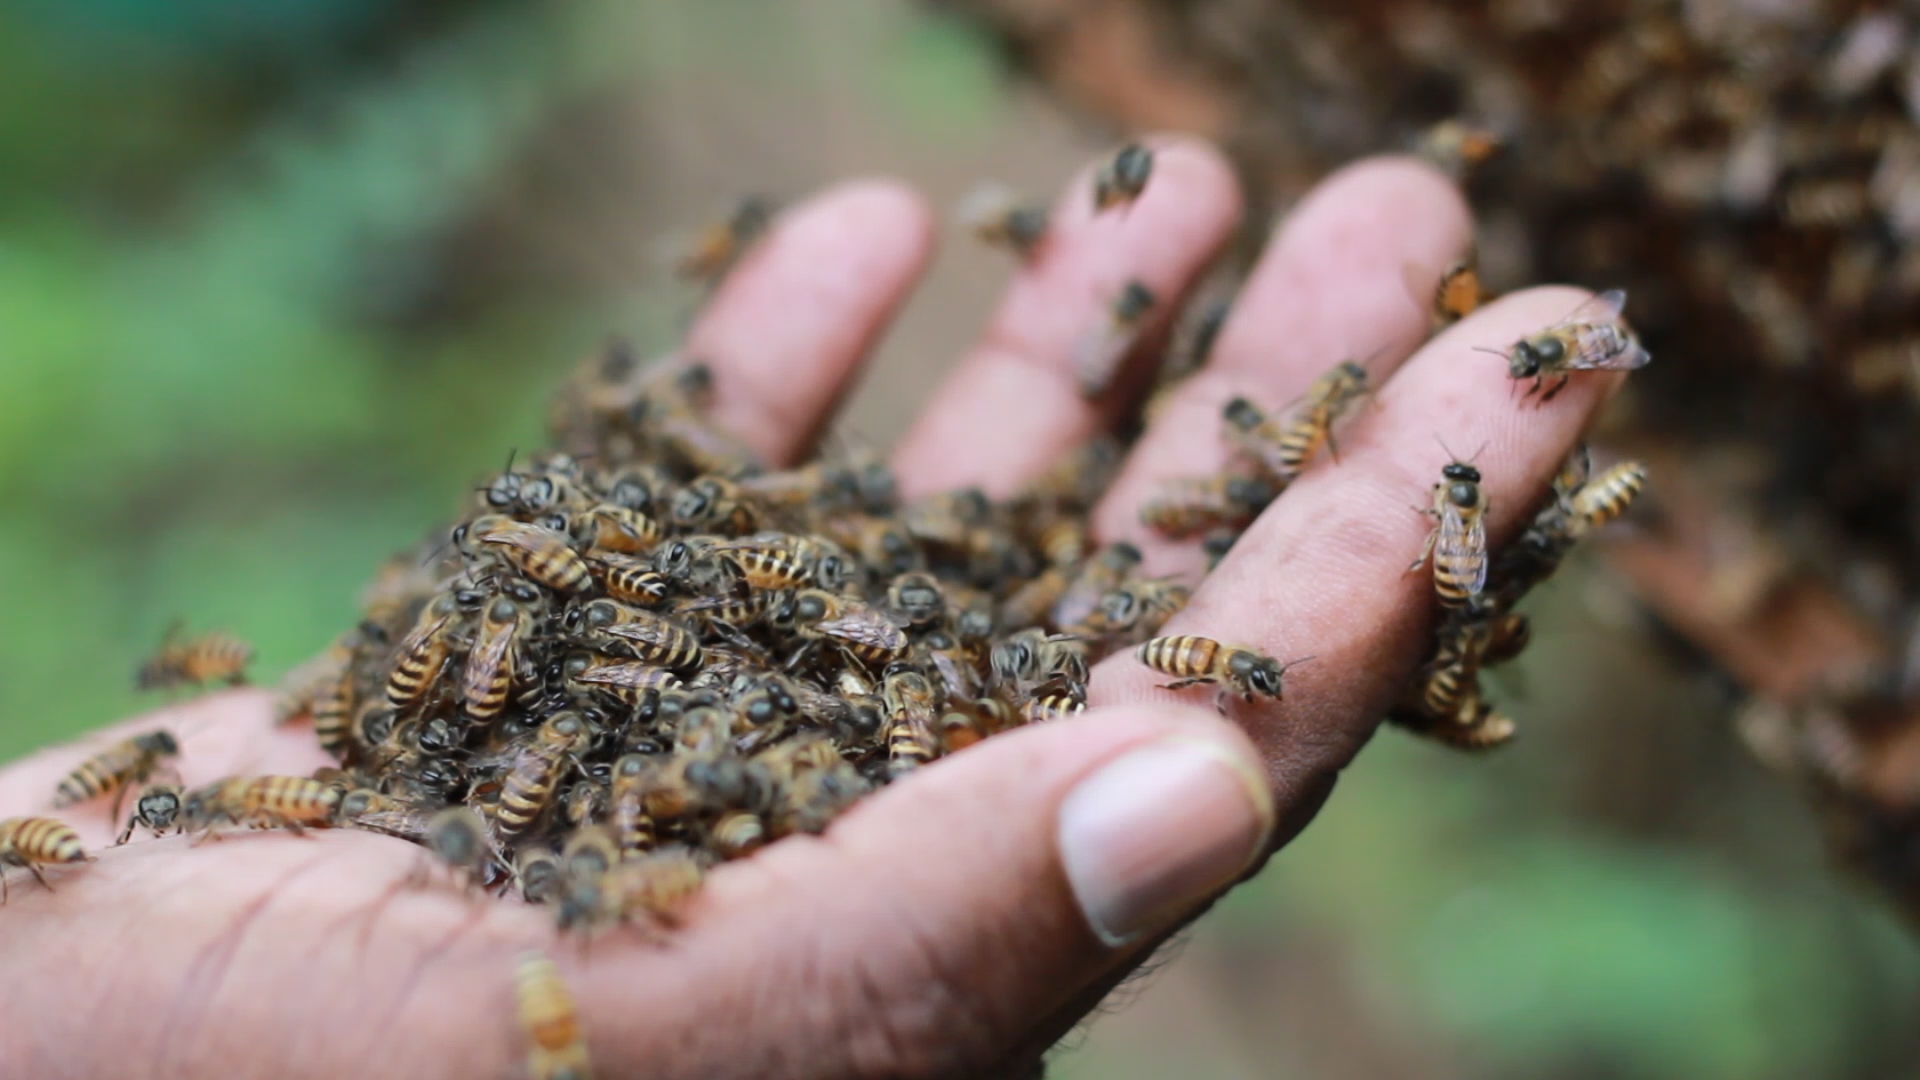 Meet Johnson Jacob — the man famous for being Mumbai's lone beekeeper